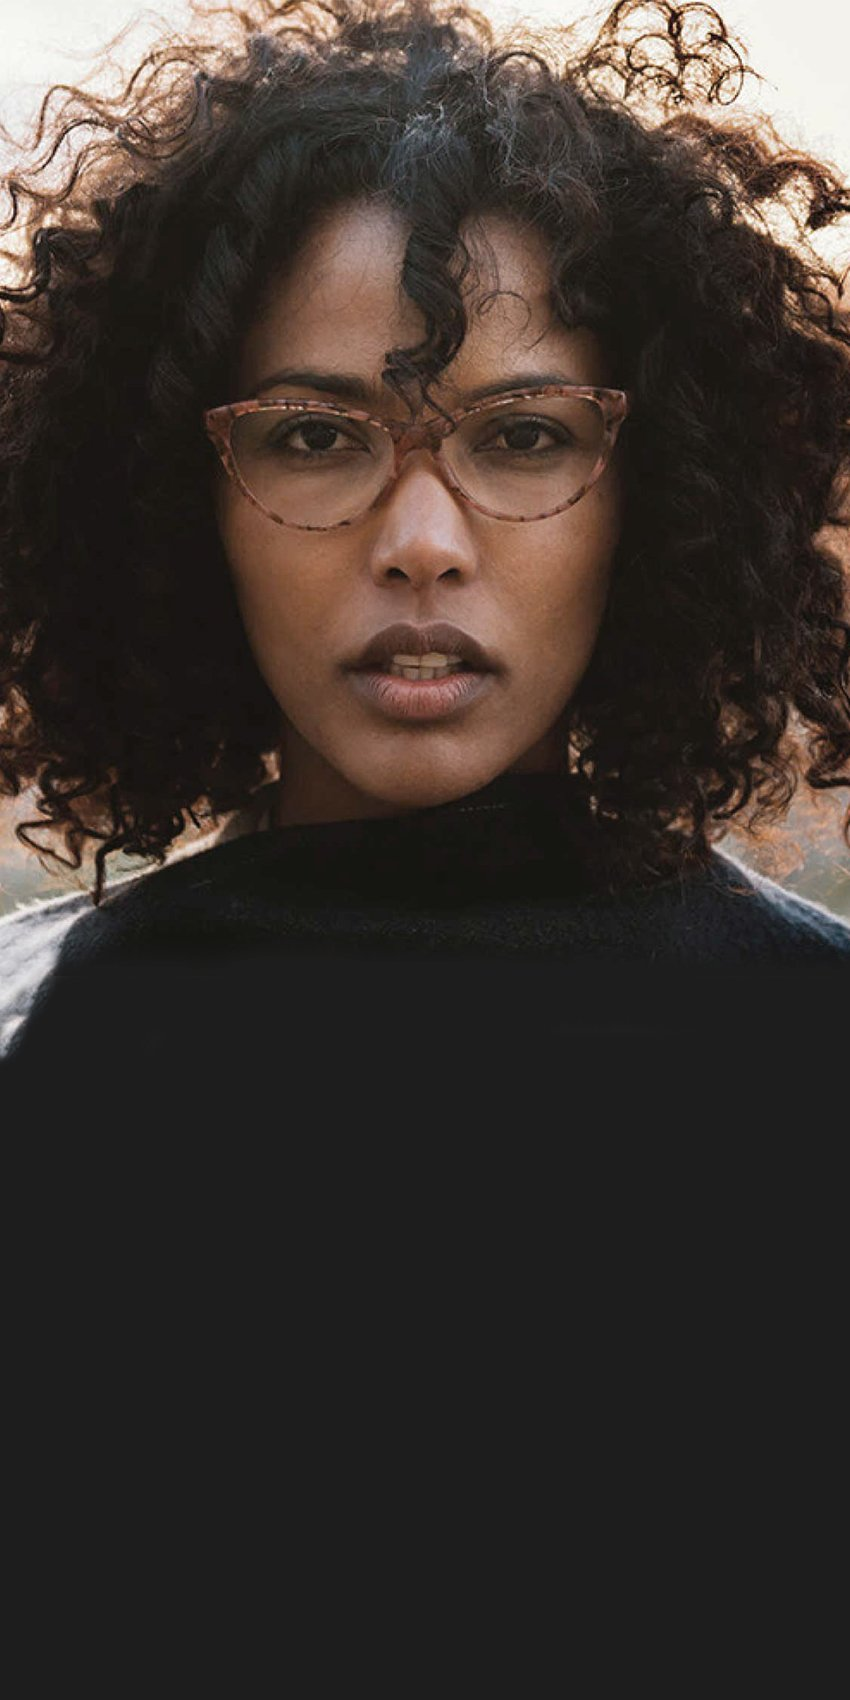 Woman wearing Zenni glasses